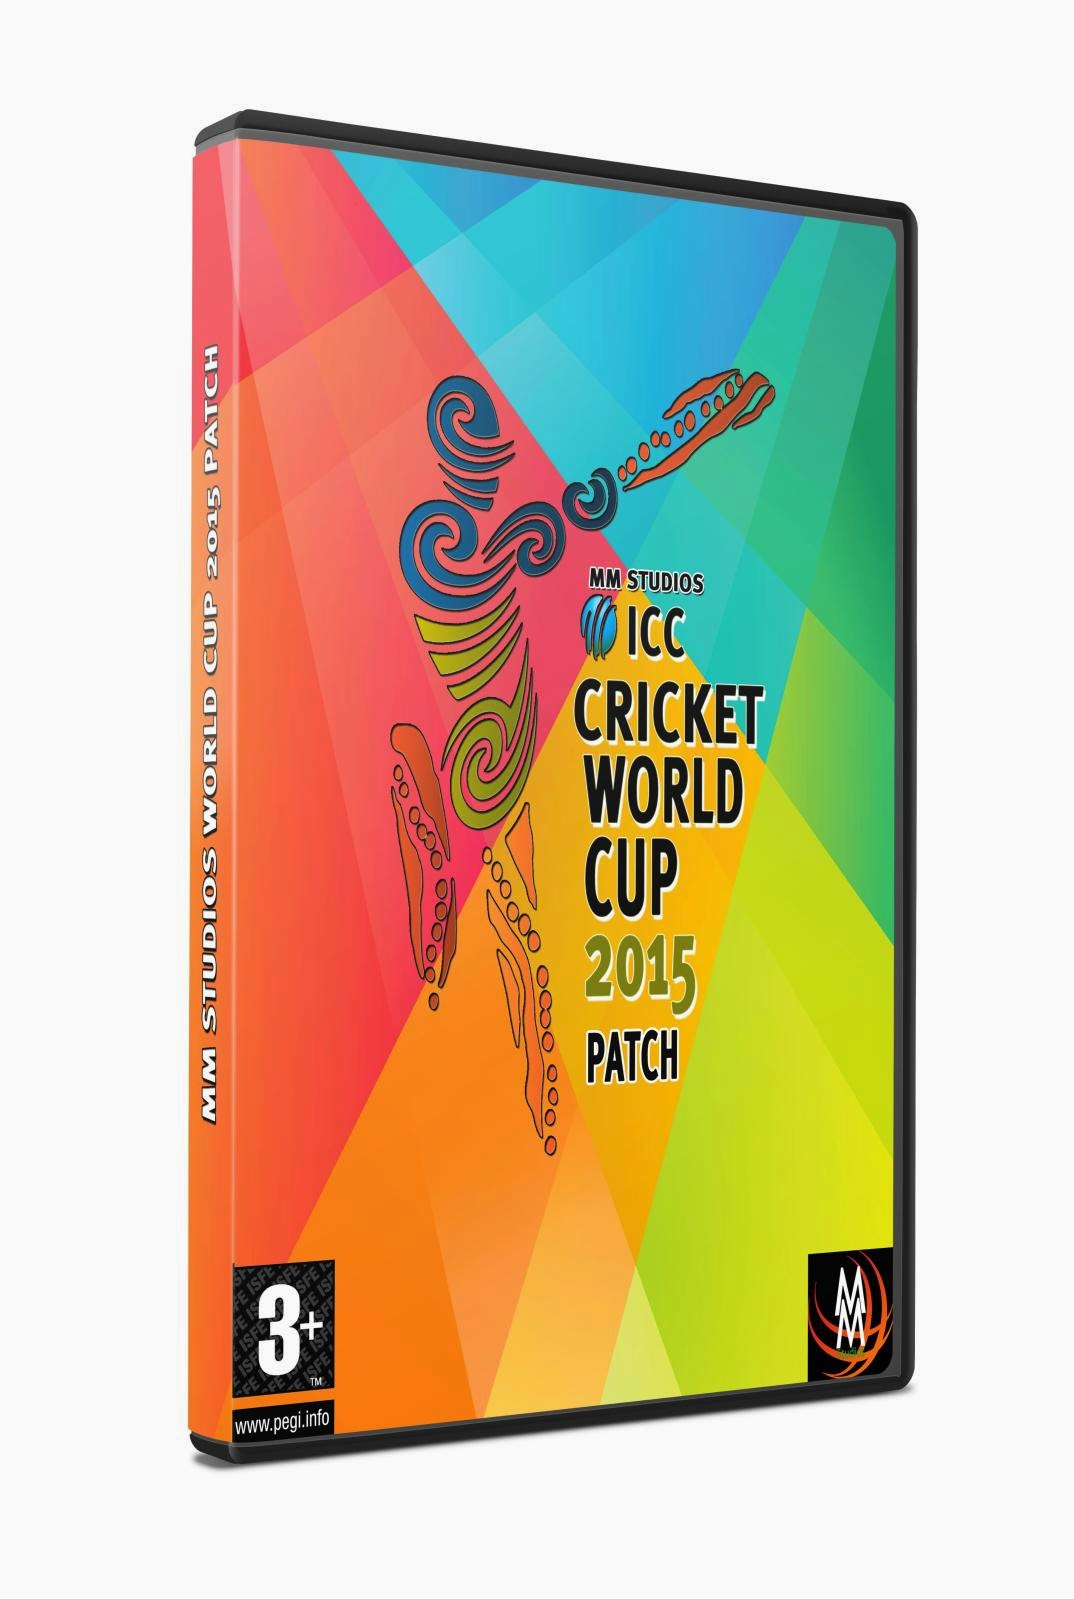 Icc cwc 2015 patch for ea cricket 07 free